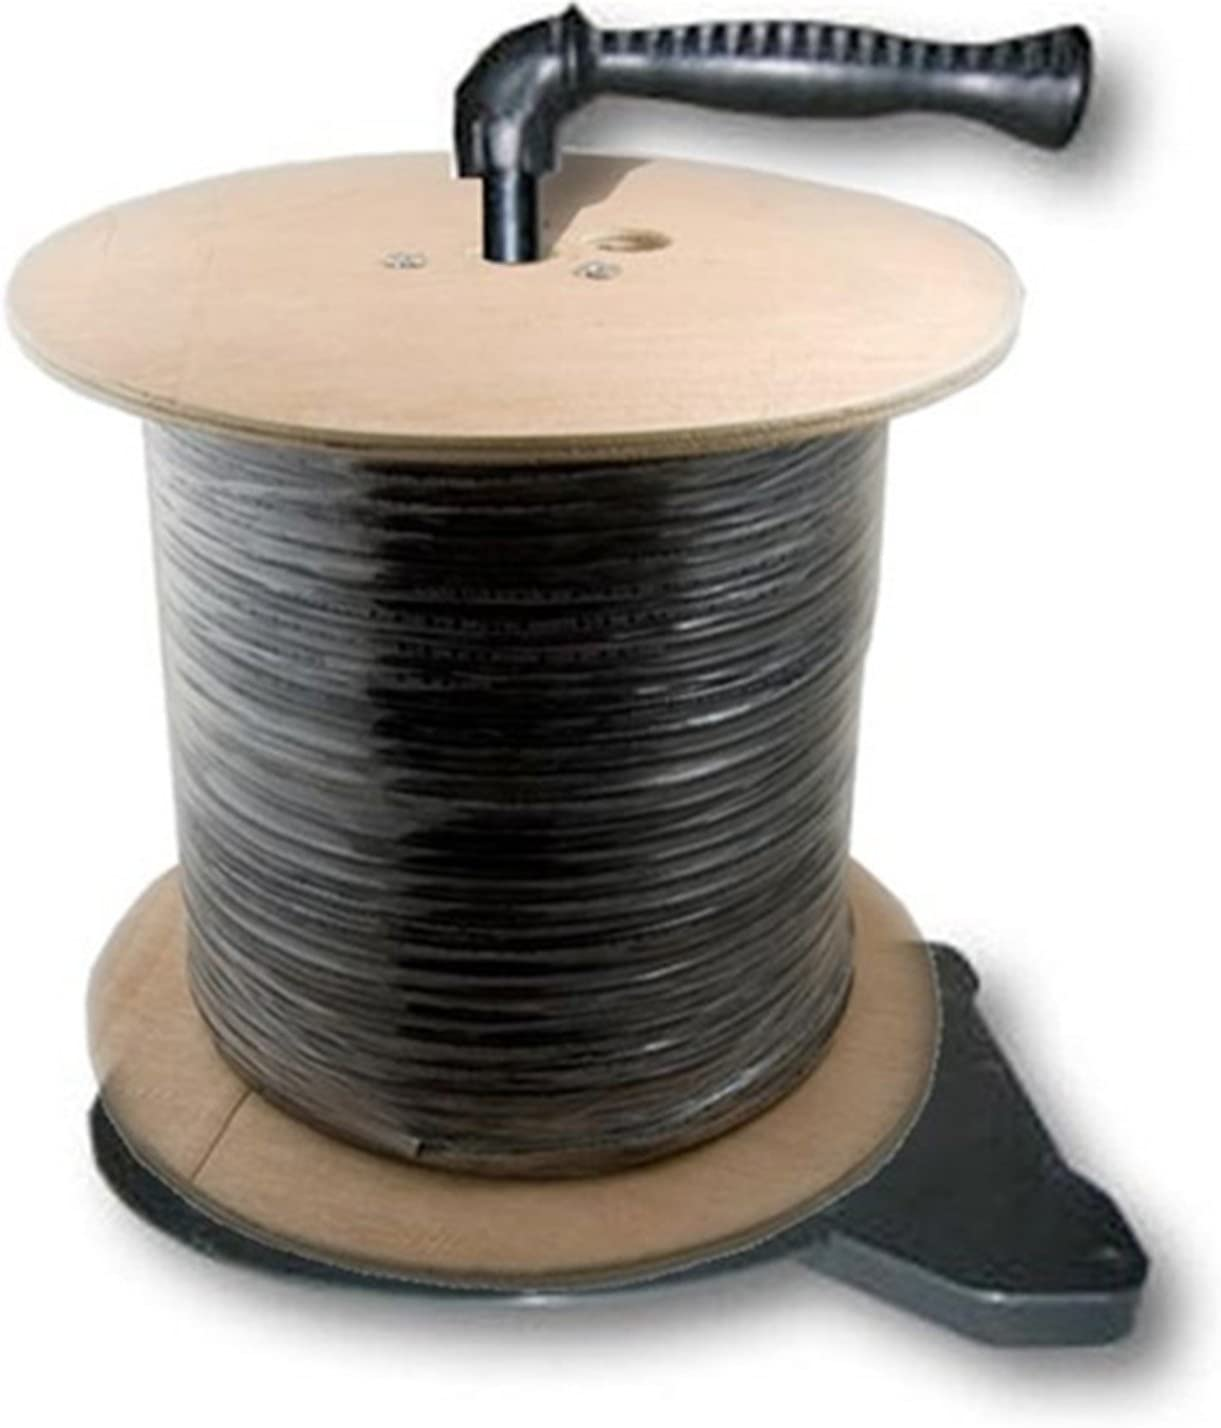 Cable Reel Systems VCC-1000 Vertical Or Horizontal Cable Caddy